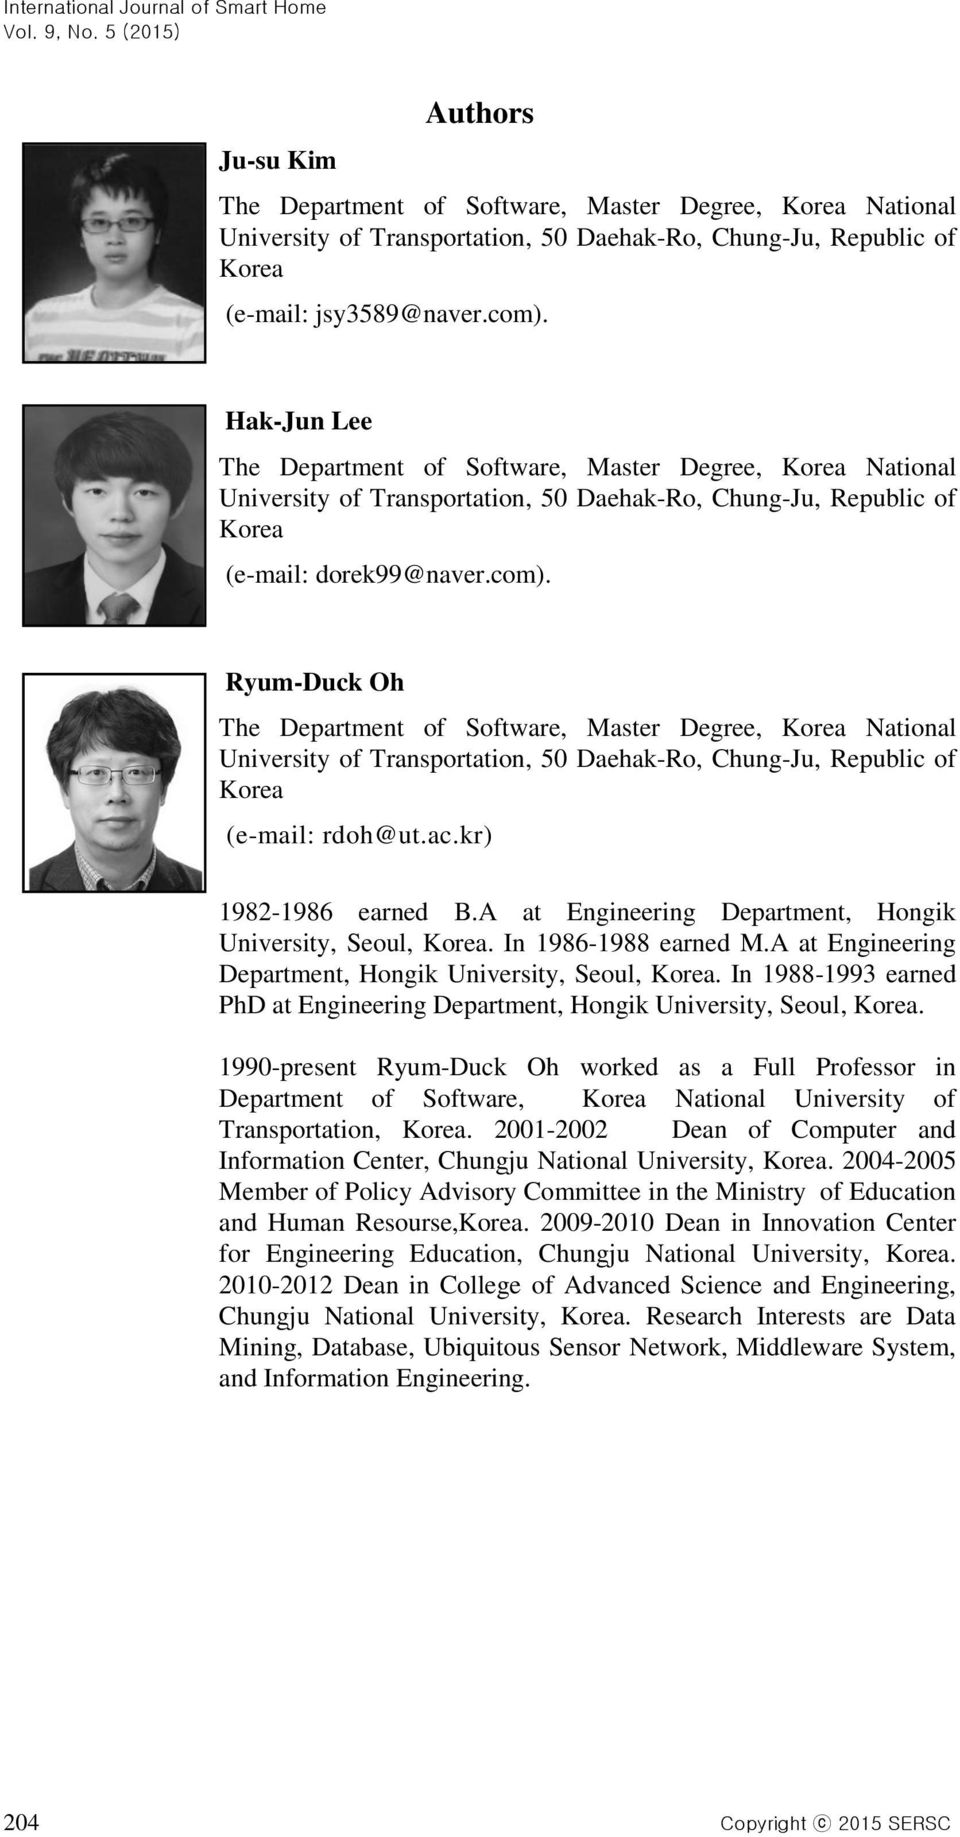 Ryum-Duck Oh The Department of Software, Master Degree, Korea National University of Transportation, 50 Daehak-Ro, Chung-Ju, Republic of Korea (e-mail: rdoh@ut.ac.kr) 1982-1986 earned B.